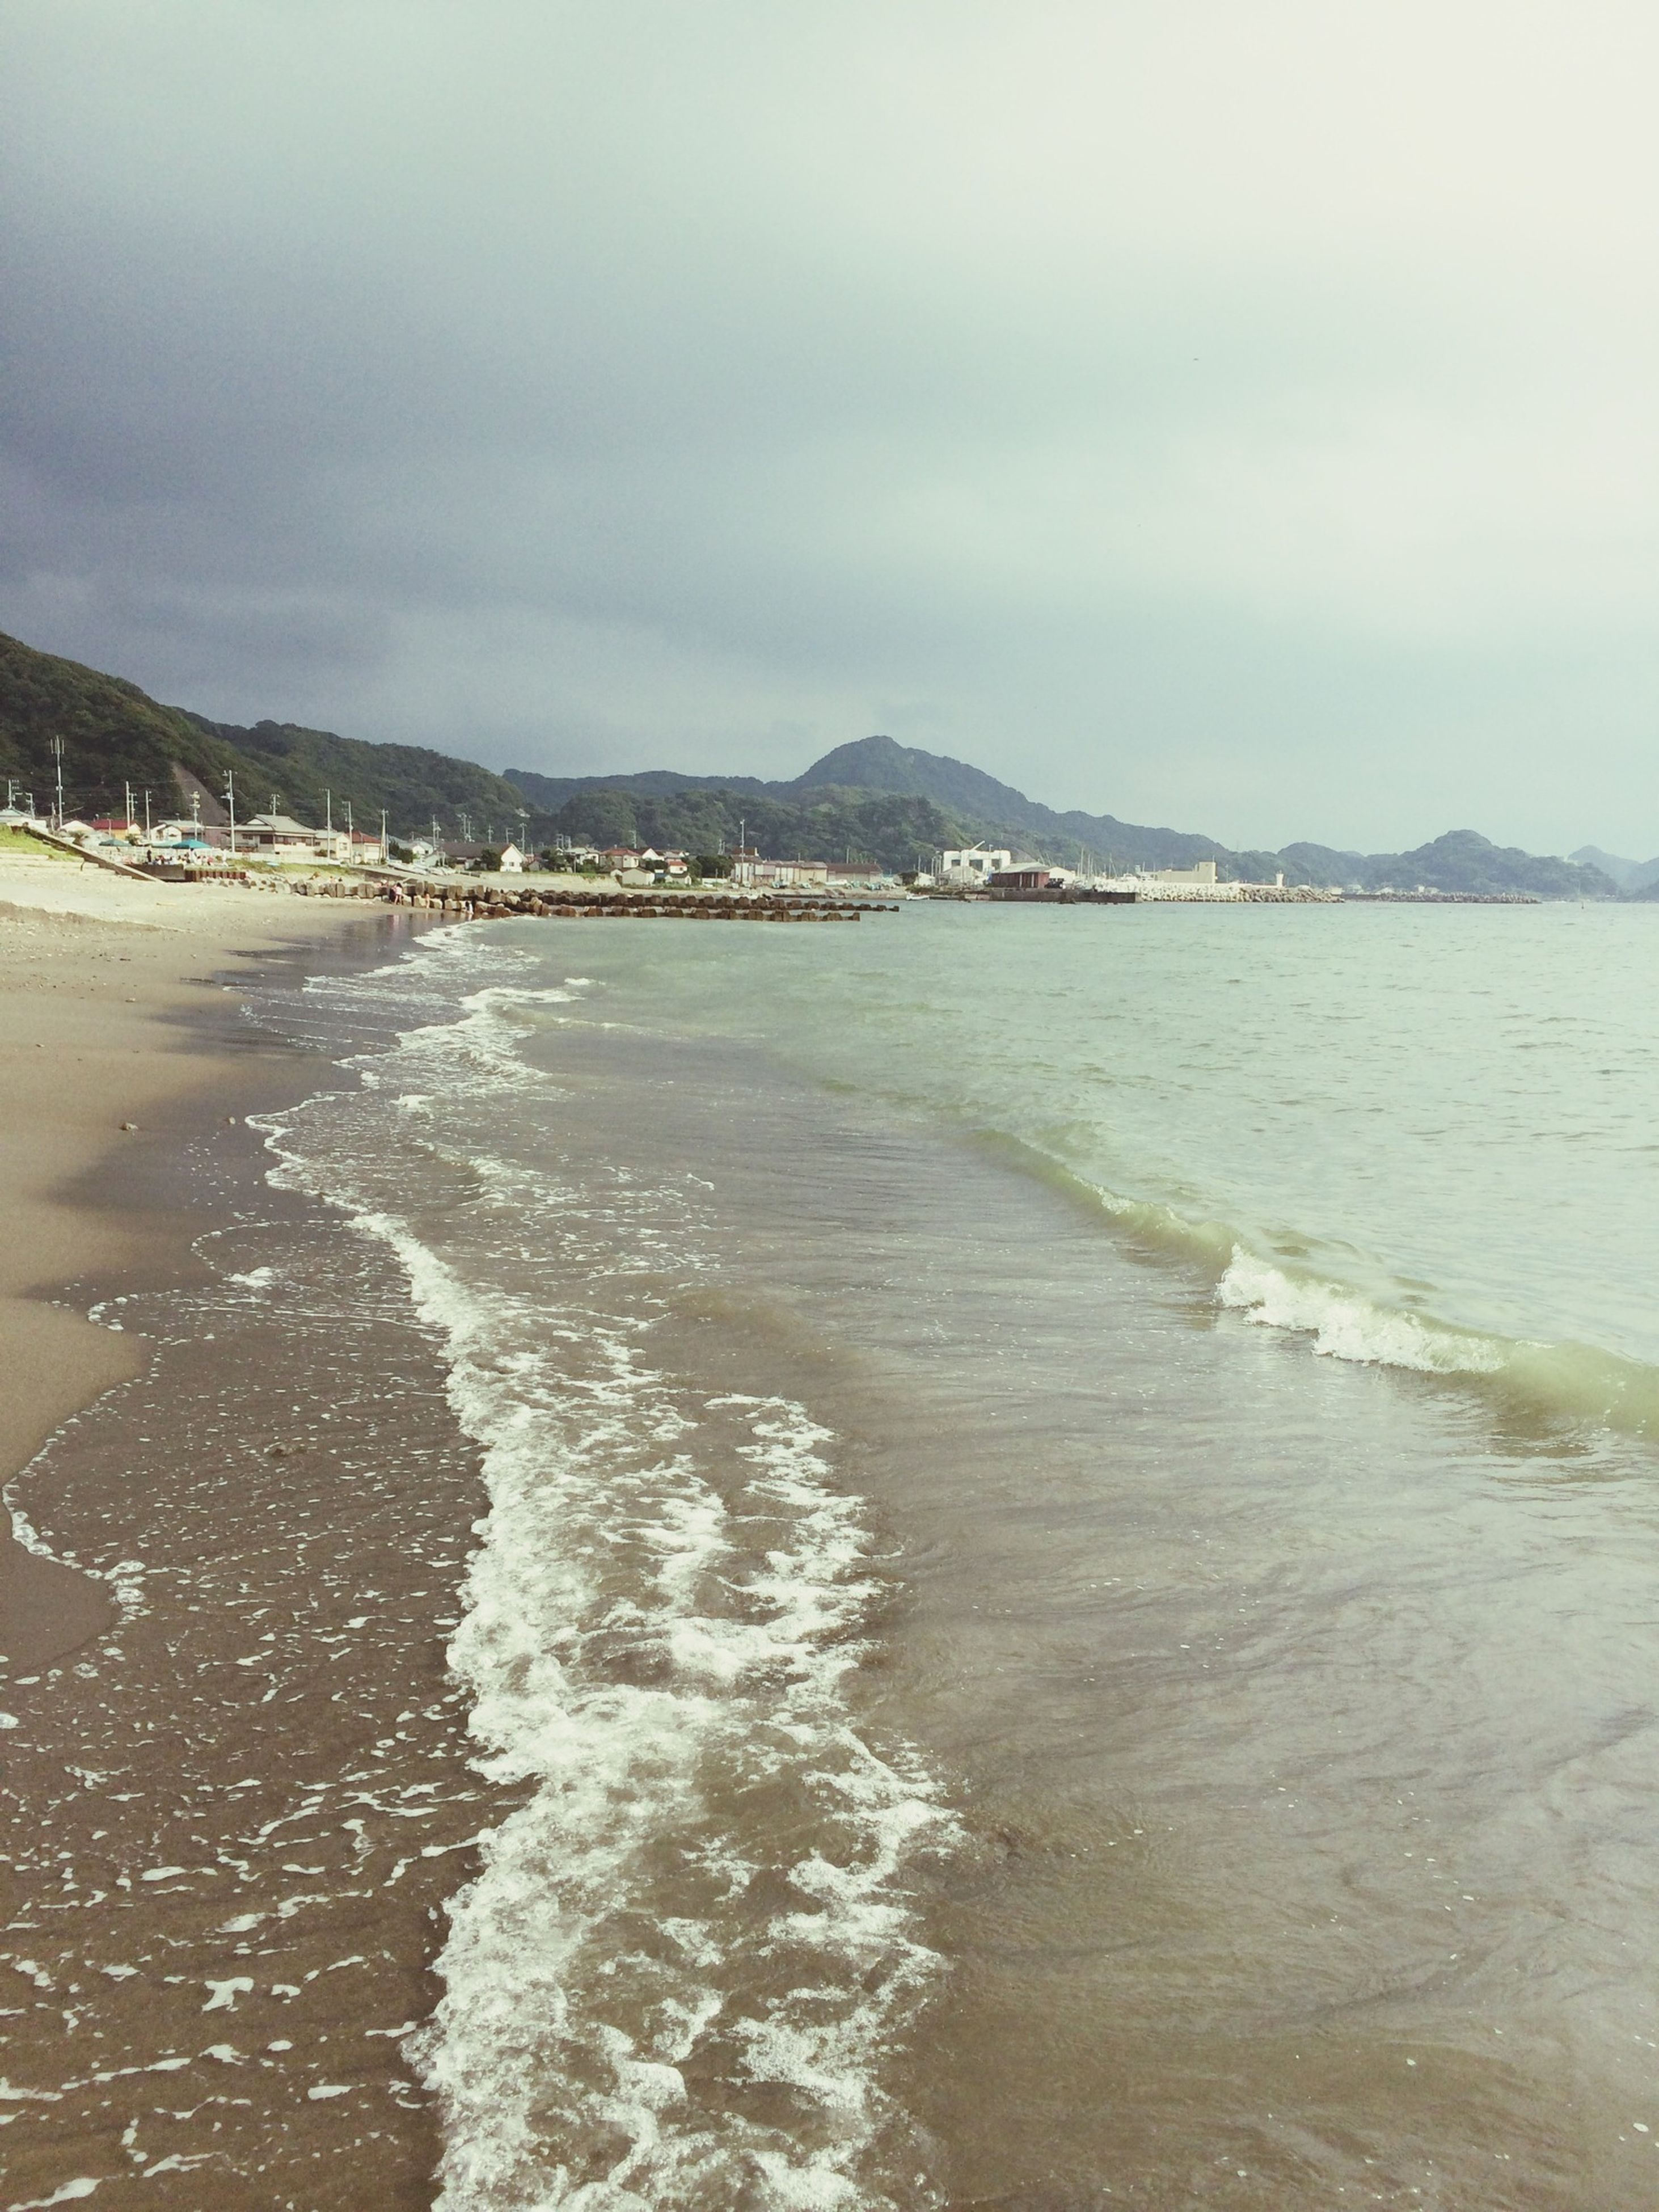 water, sea, beach, sky, tranquil scene, scenics, shore, tranquility, beauty in nature, sand, nature, wave, cloud - sky, mountain, coastline, surf, cloudy, idyllic, waterfront, cloud